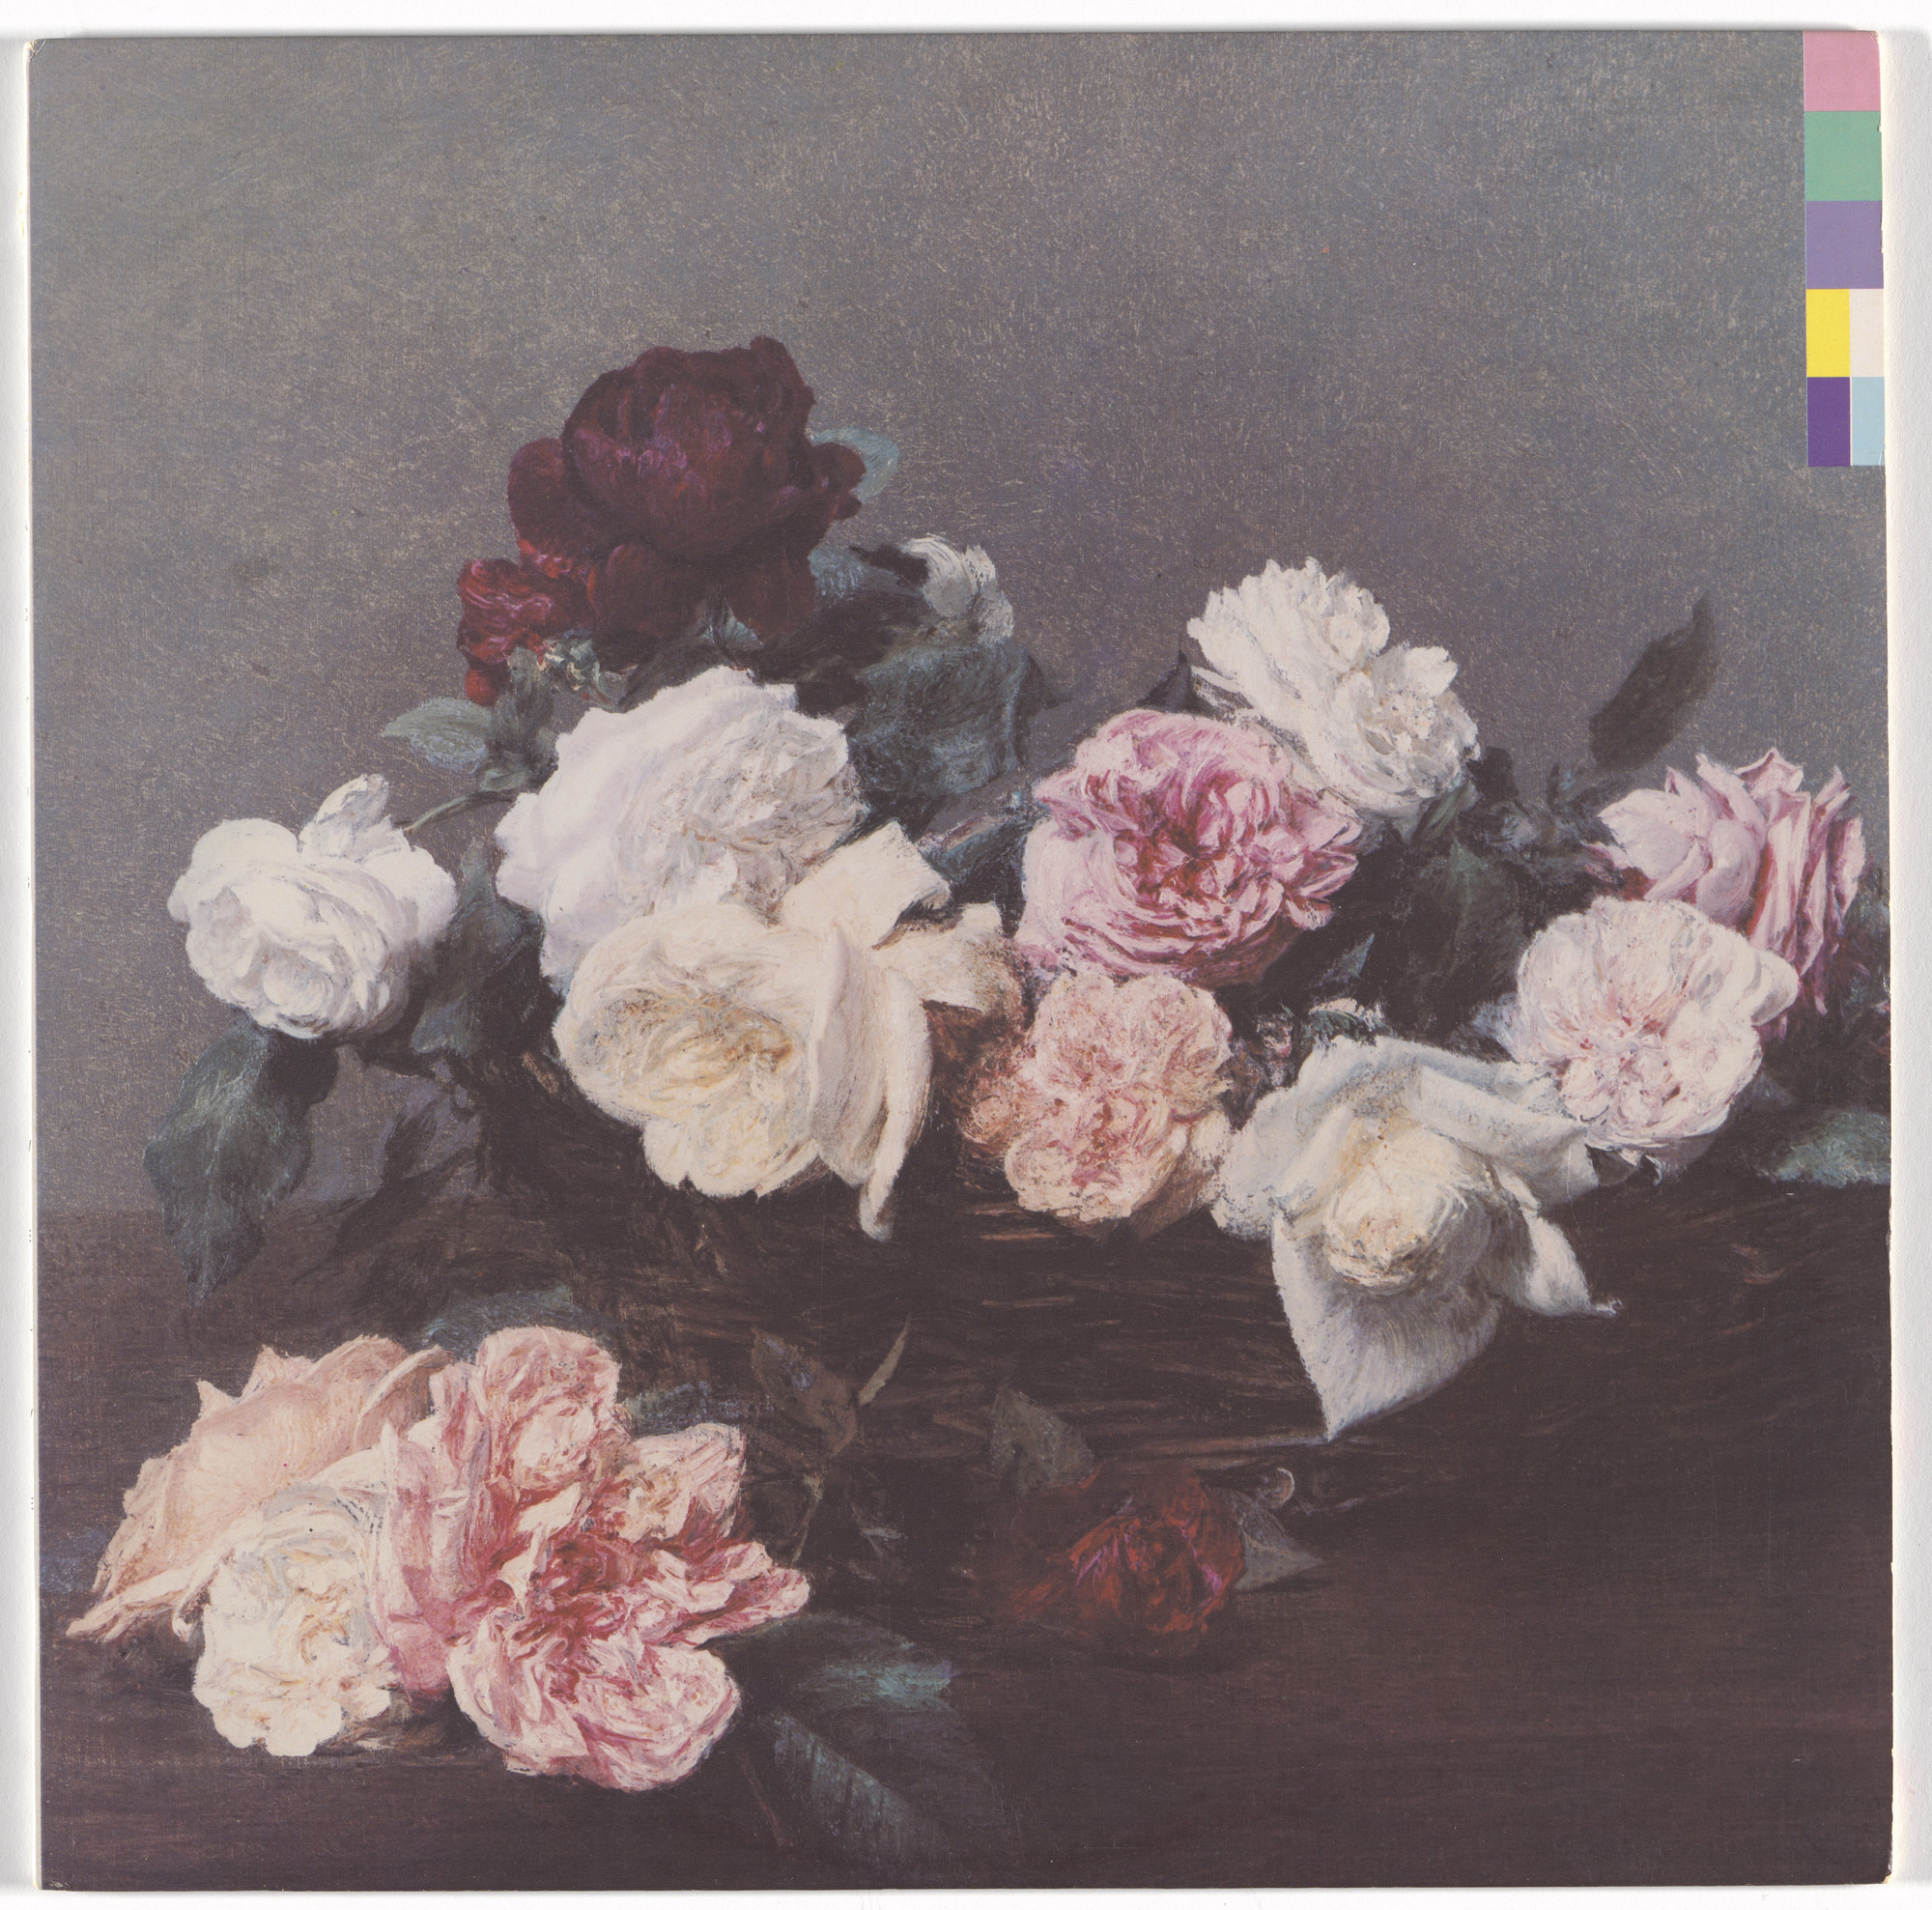 Peter Saville, Factory Records, Manchester, Henri Fantin-Latour. Album cover for New Order, Power, Corruption & Lies. 1983